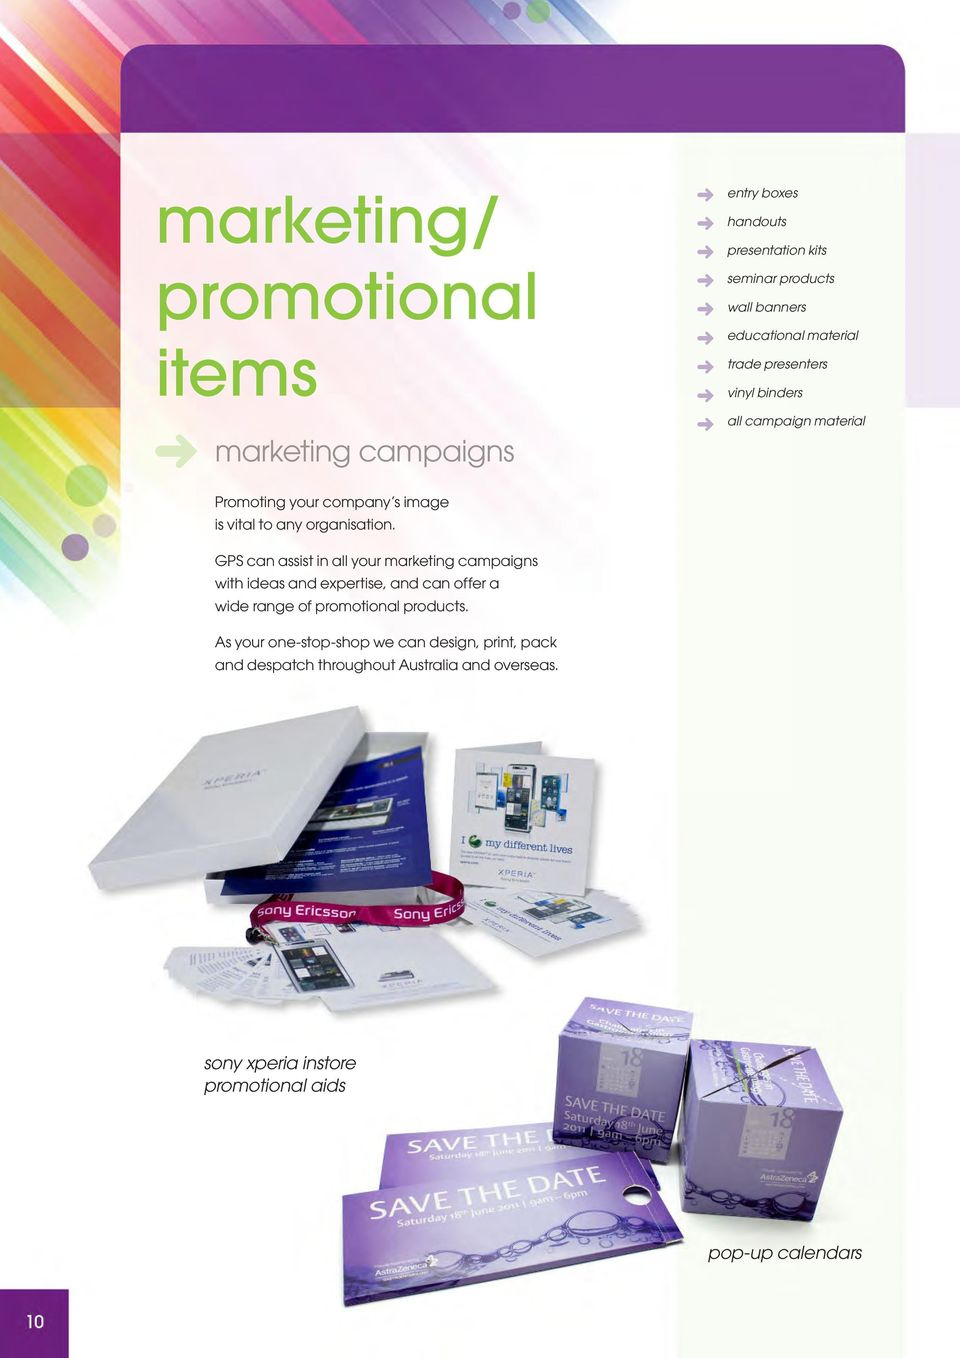 GPS can assist in all your marketing campaigns with ideas and expertise, and can offer a wide range of promotional products.